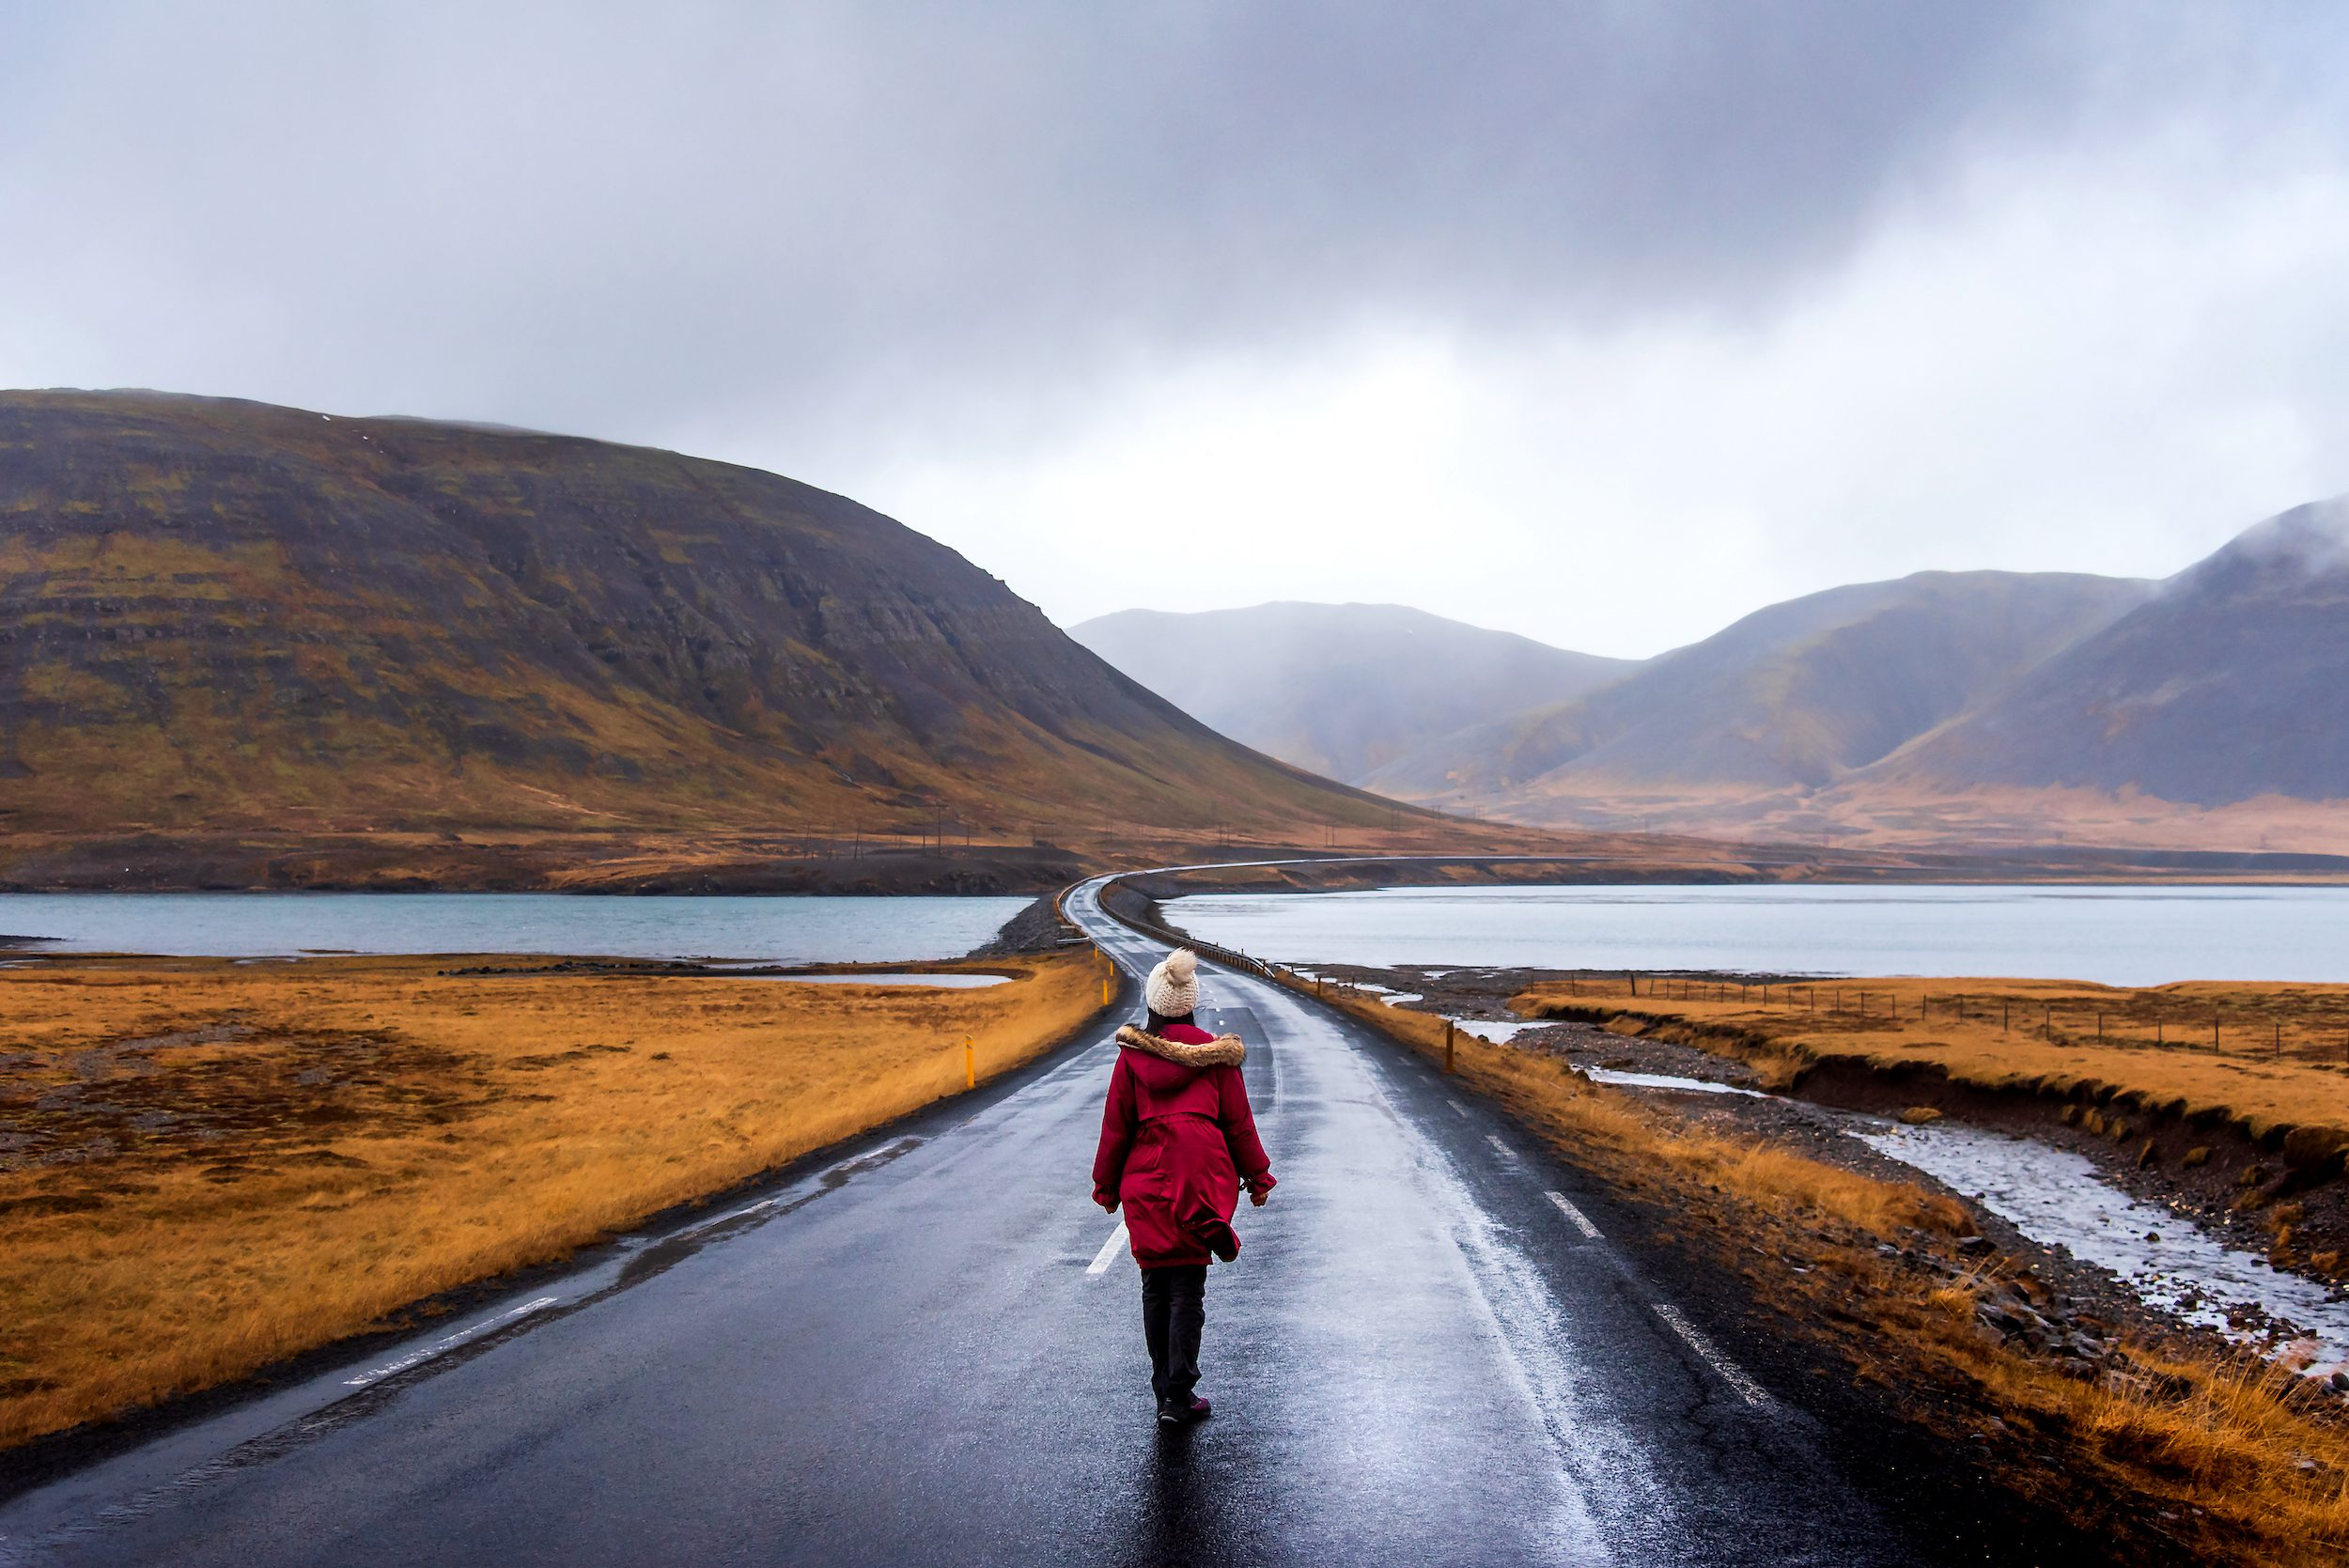 The Ongoing Fight for Gender Equality in Iceland